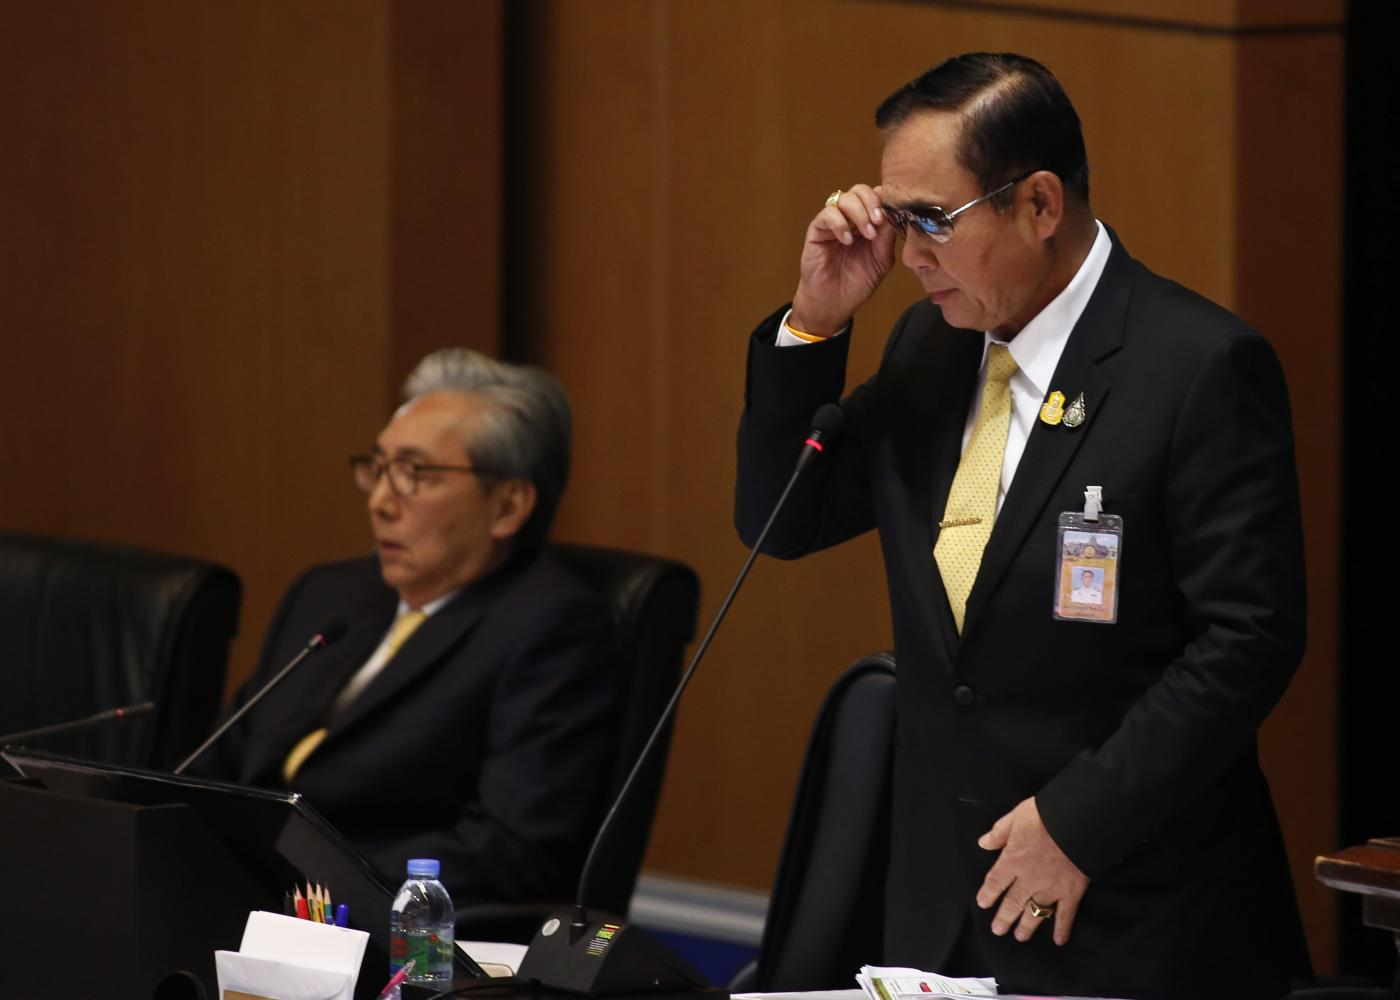 Prime Minister Prayut Chan-o-cha, right, speaks during the government policy debate in parliament last week. His government's manifesto does not address life-threatening problems faced by the Thai economy, says Bangkok Post columnist Chartchai Parasuk.PATTARAPONG CHATPATTARASILL